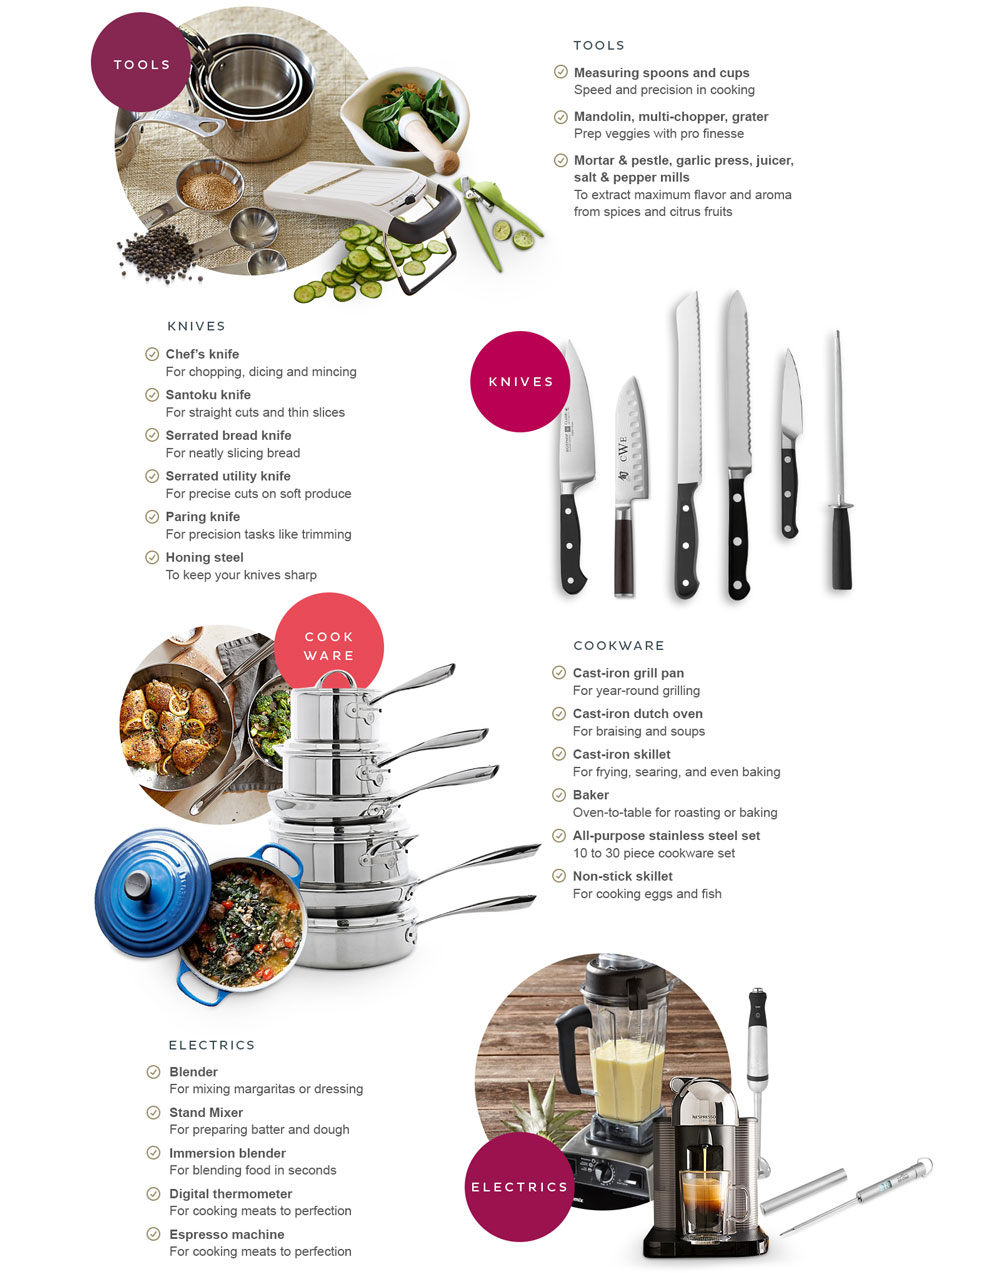 Williams-Sonoma wedding gifts for a well equipped kitchen